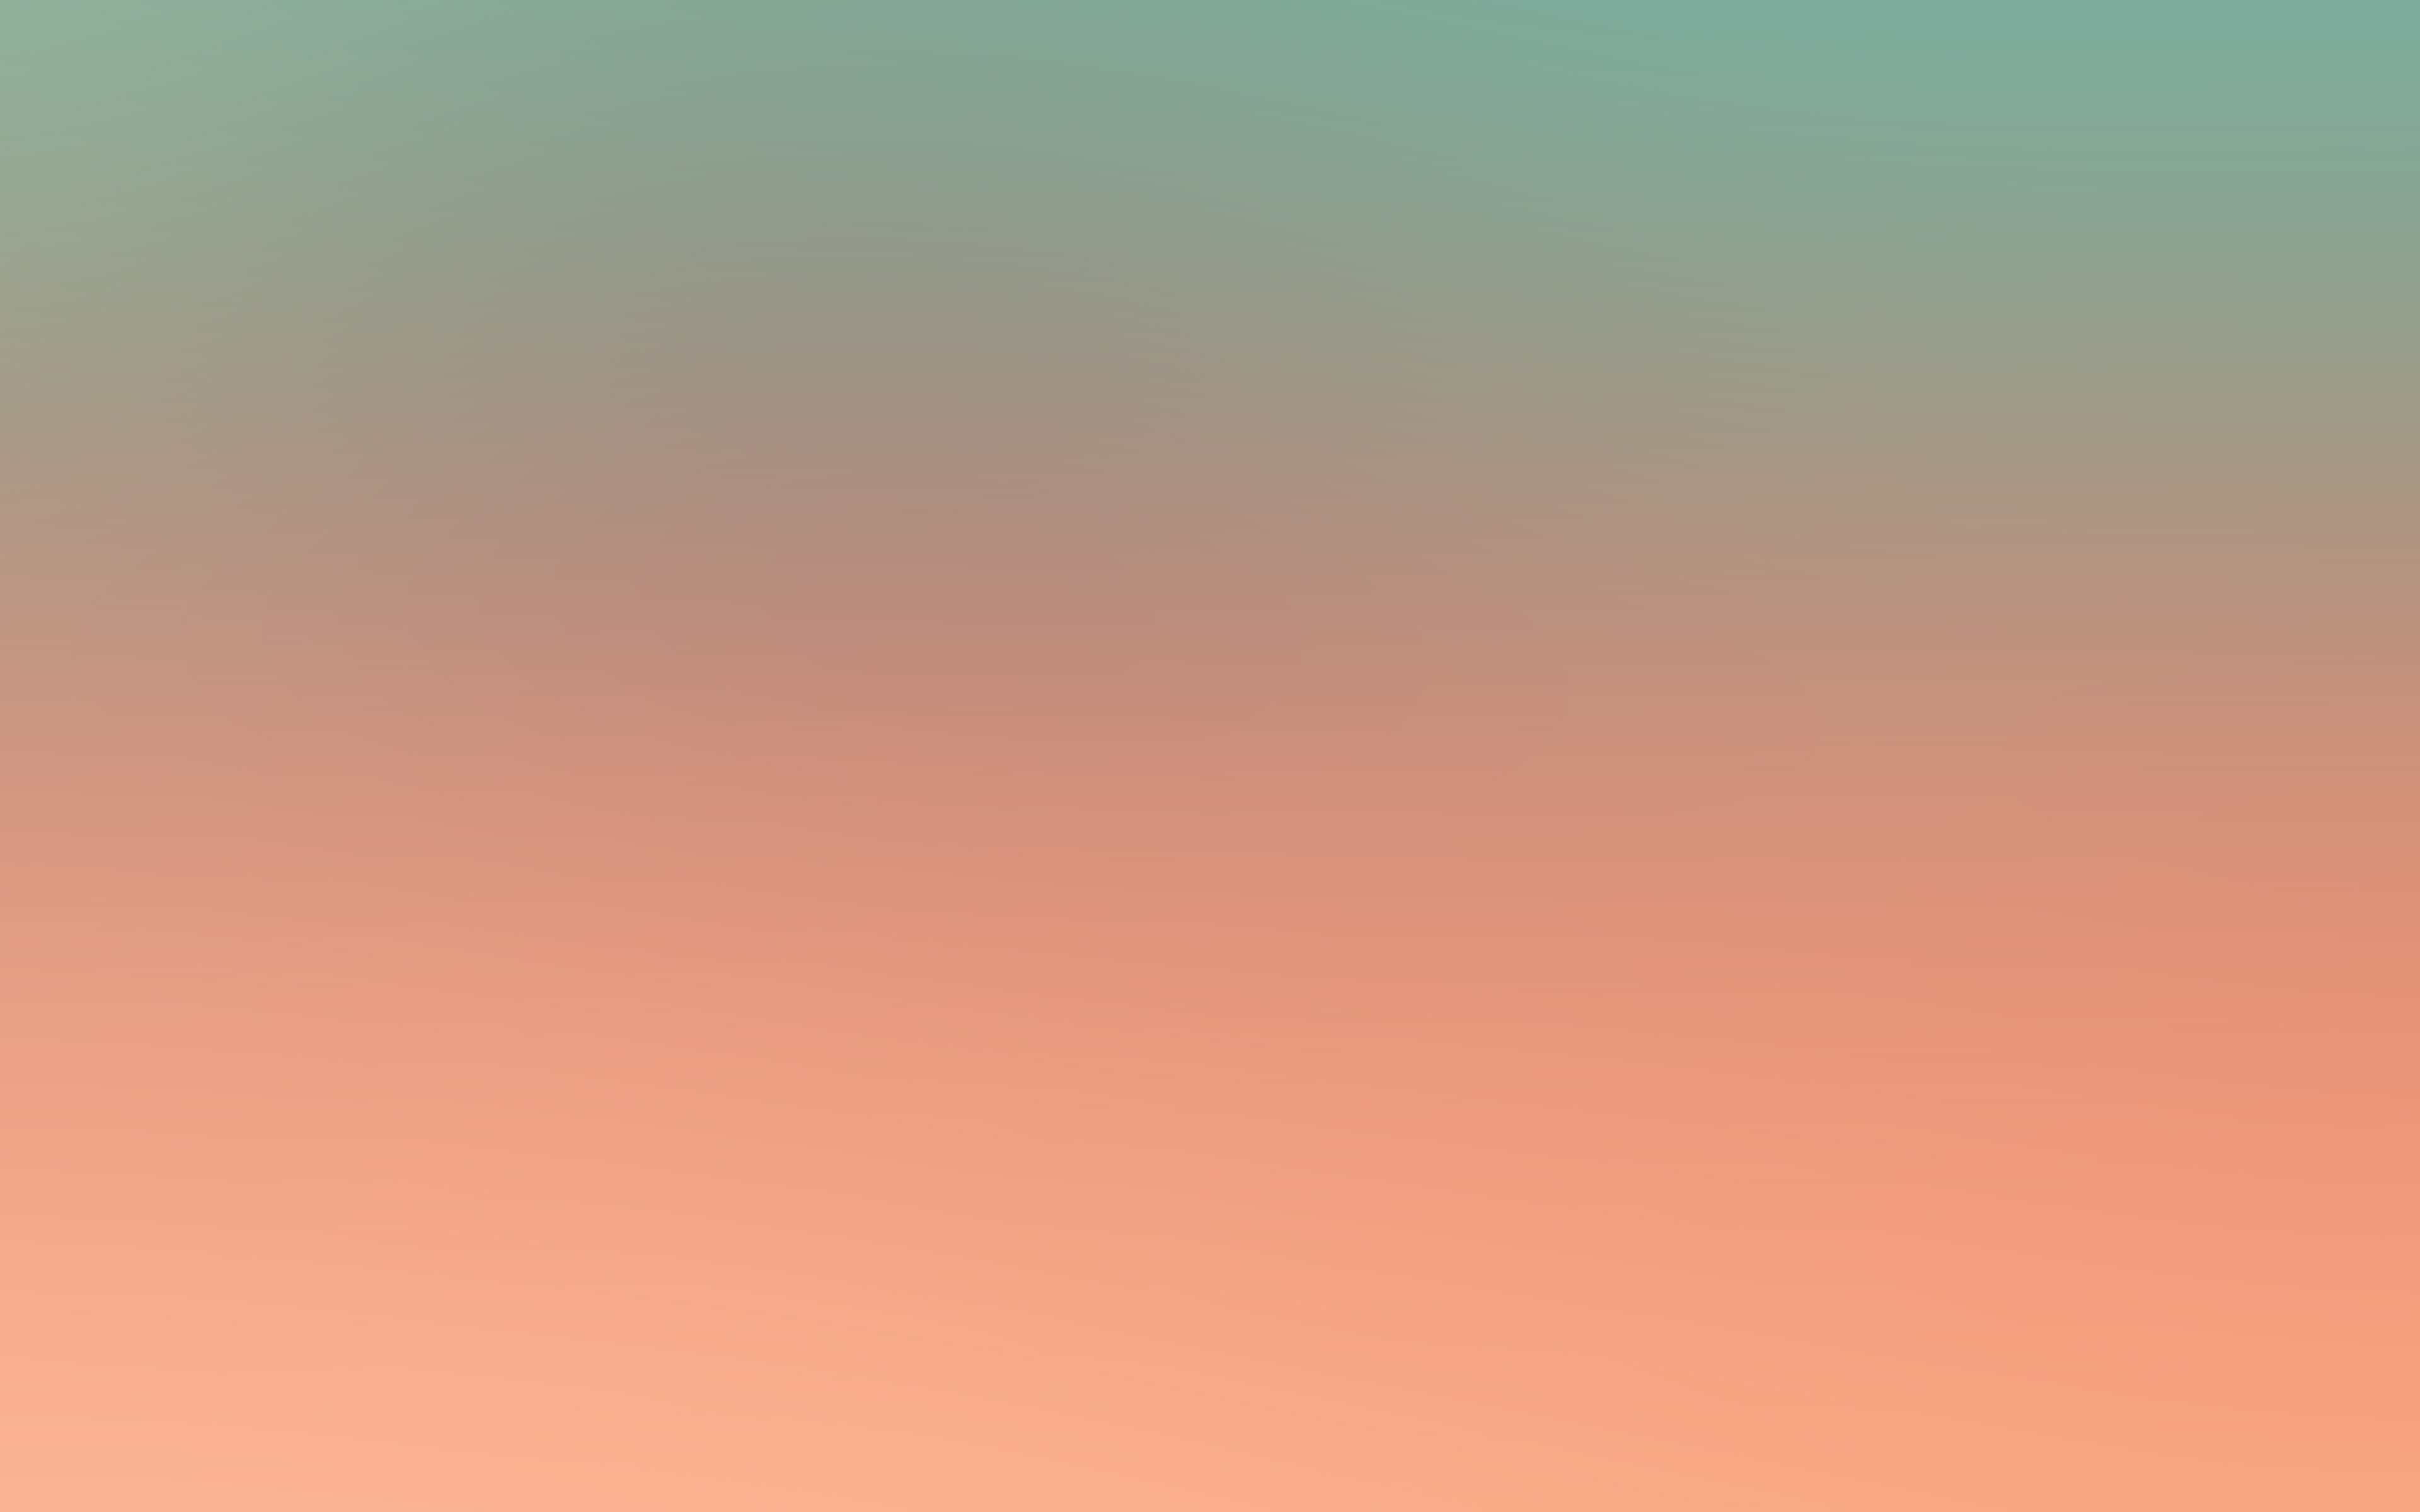 Fall Wallpapers In Pink Color Si52 Green Orange Soft Pastel Gradation Blur Wallpaper